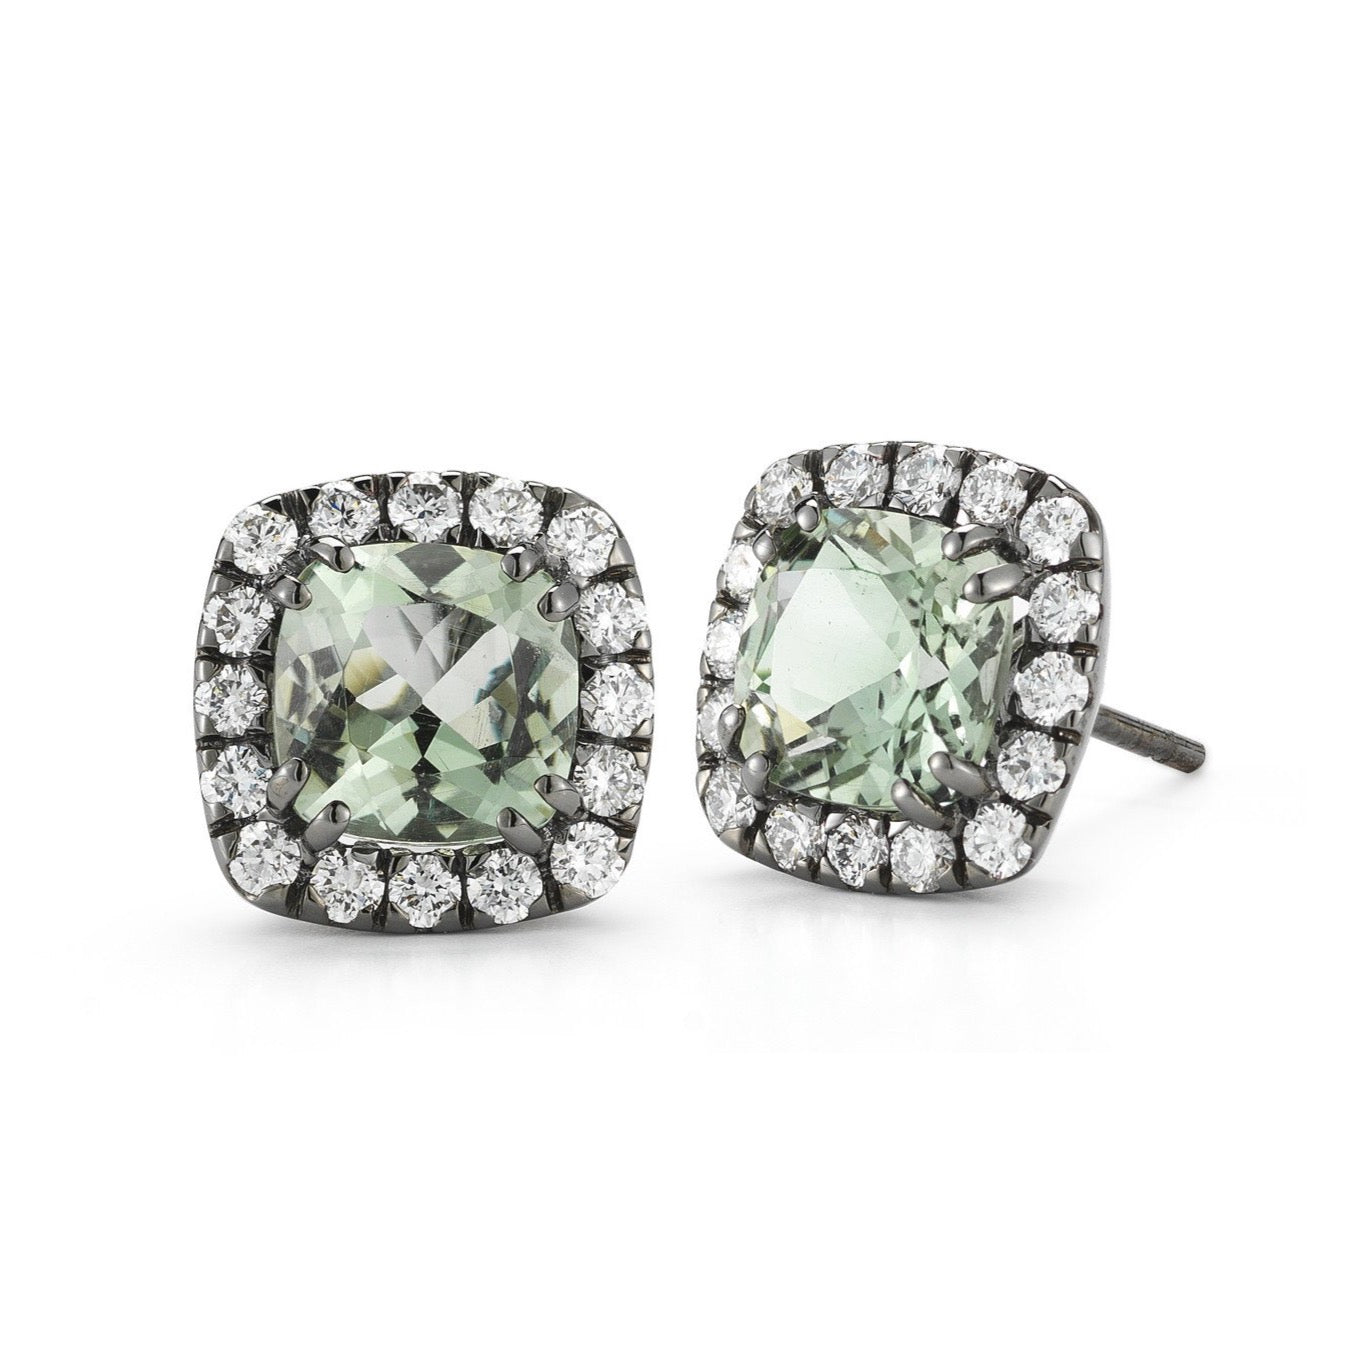 A-FURST-DYNAMITE-STUD-EARRINGS-PRASIOLITE-WHITE-DIAMONDS-BLACKENED-GOLD-O1321NP1